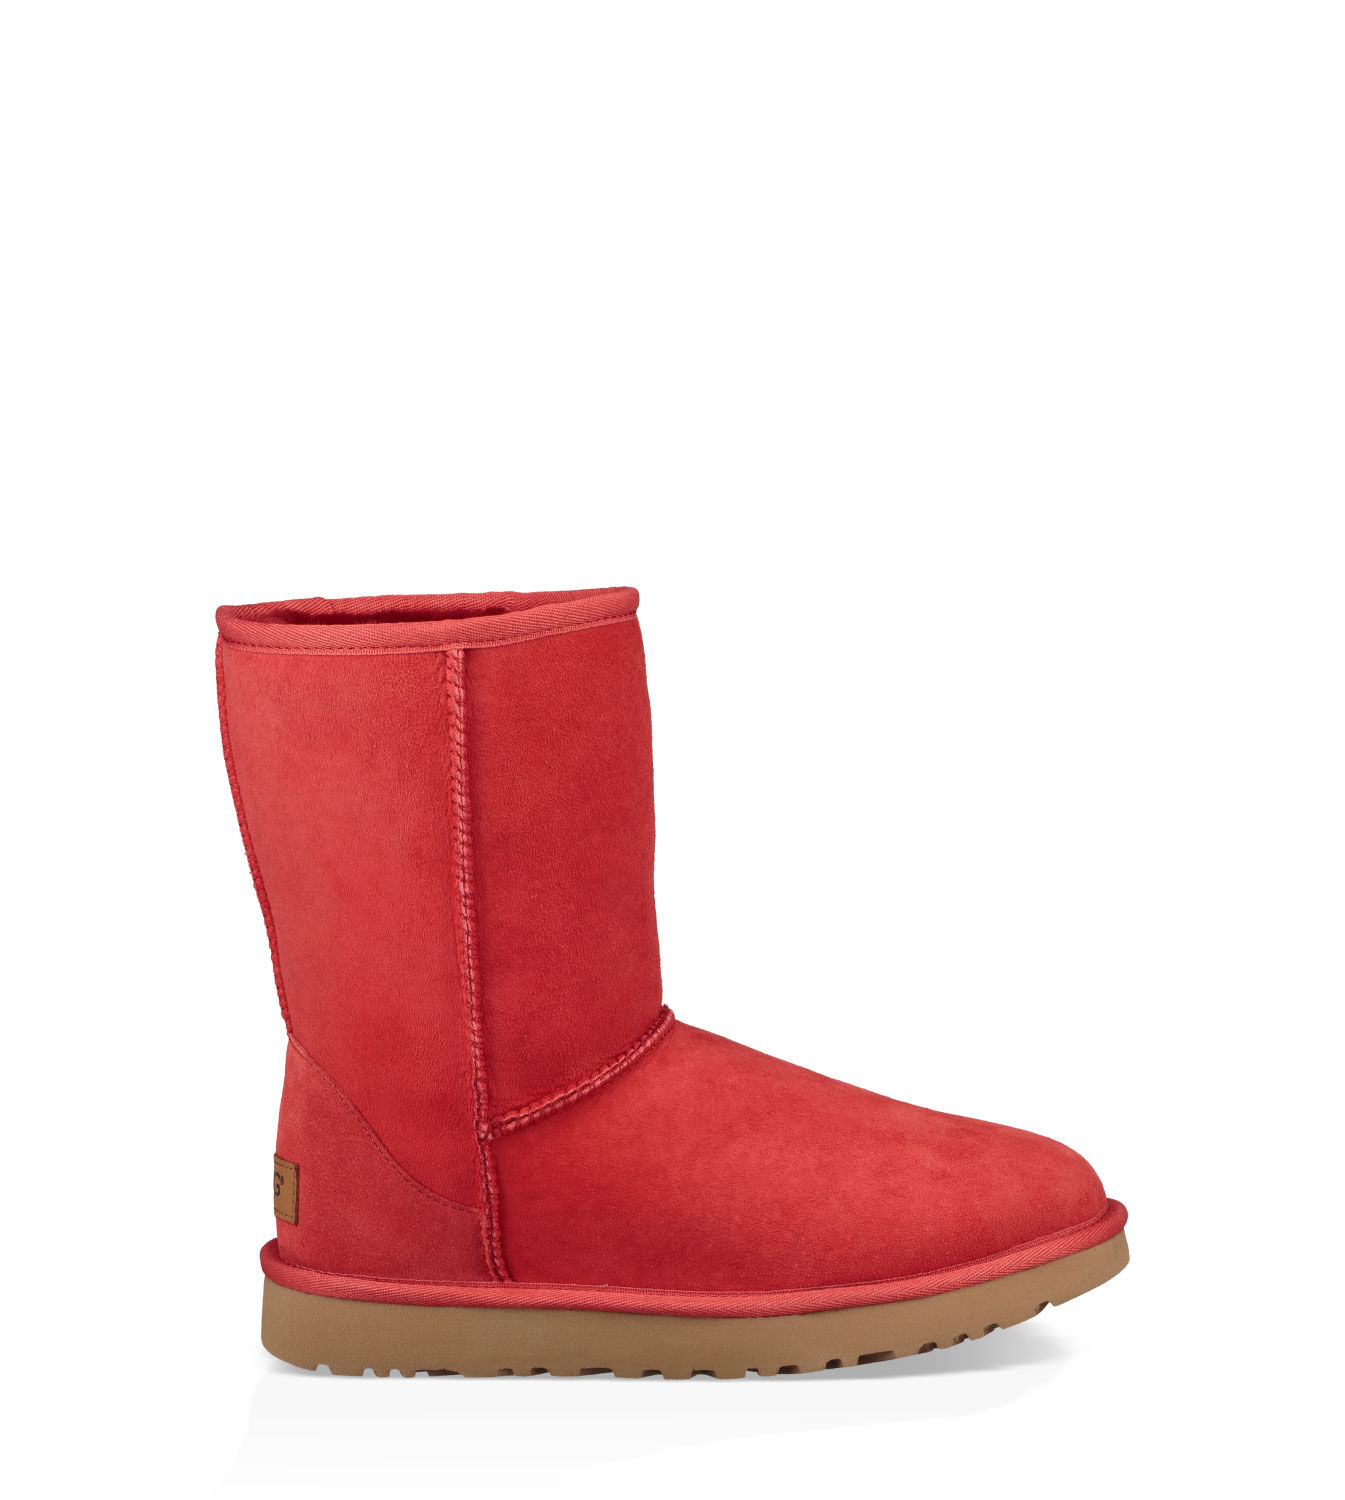 ugg canada sale collection ugg com ca rh ugg com